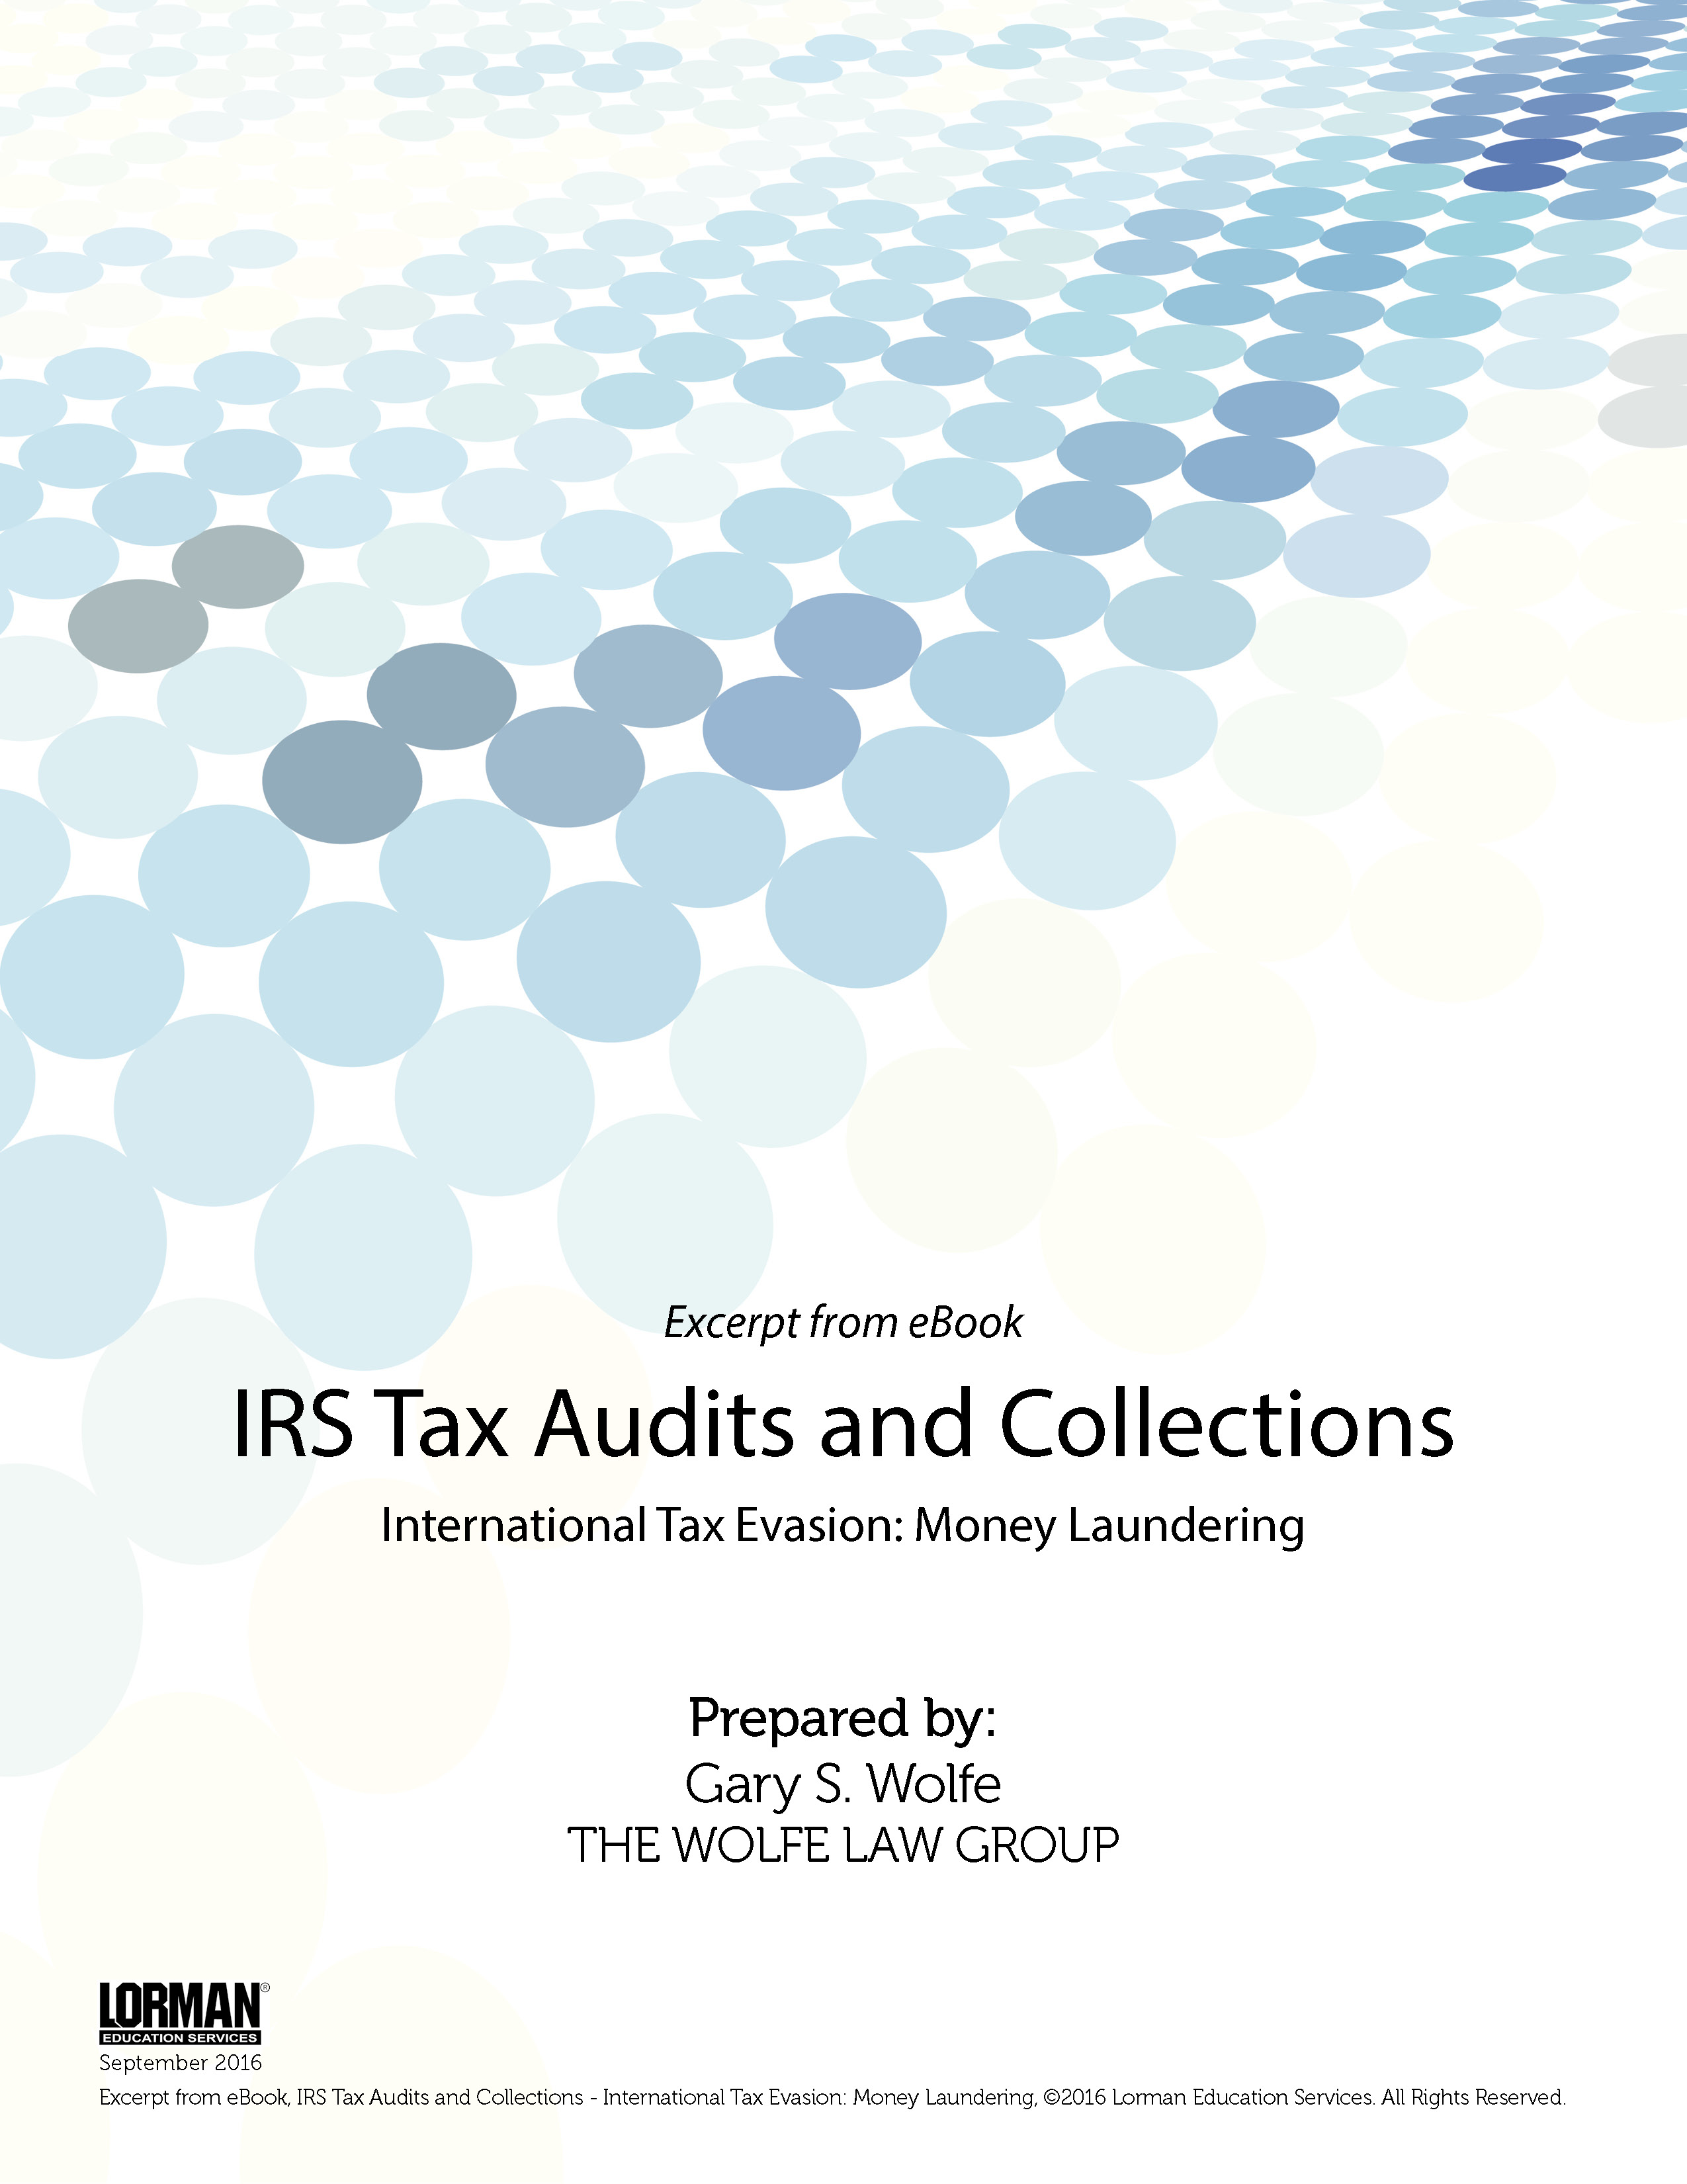 IRS Tax Audits and Collections: International Tax Evasion: Money Laundering